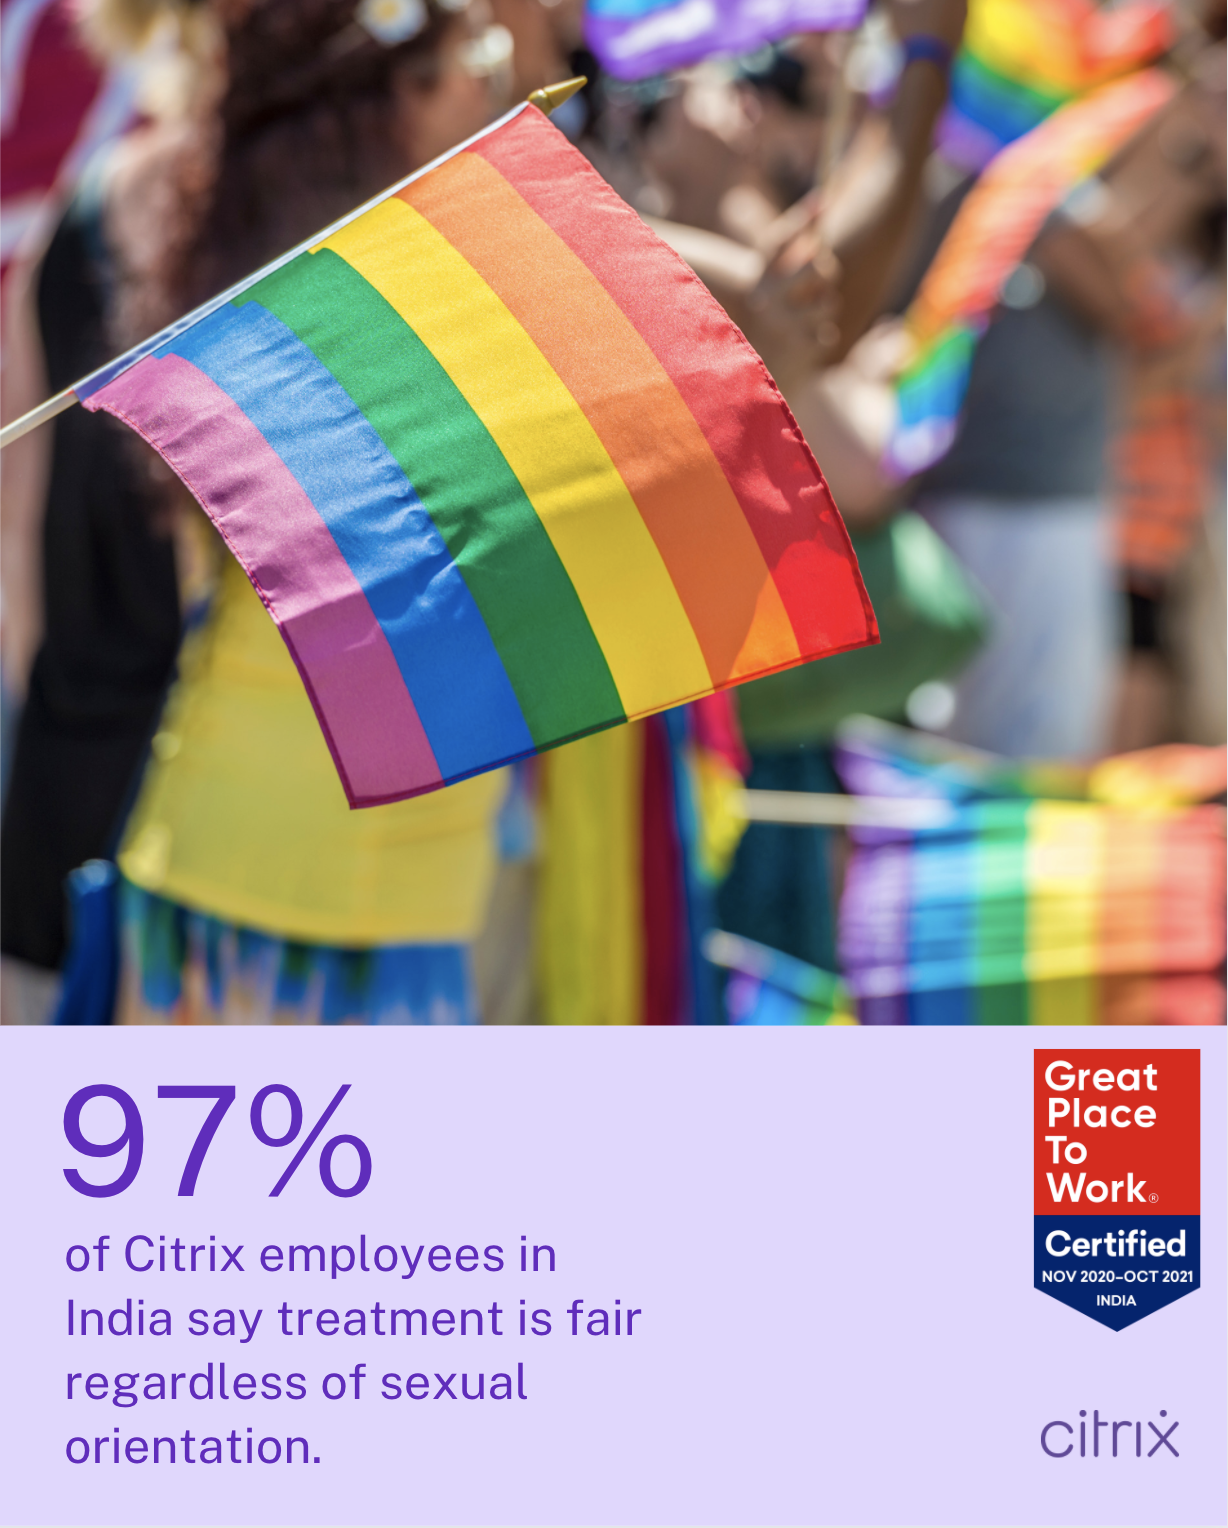 97% of Citrix employees in India say treatment is fair regardless of sexual orientation